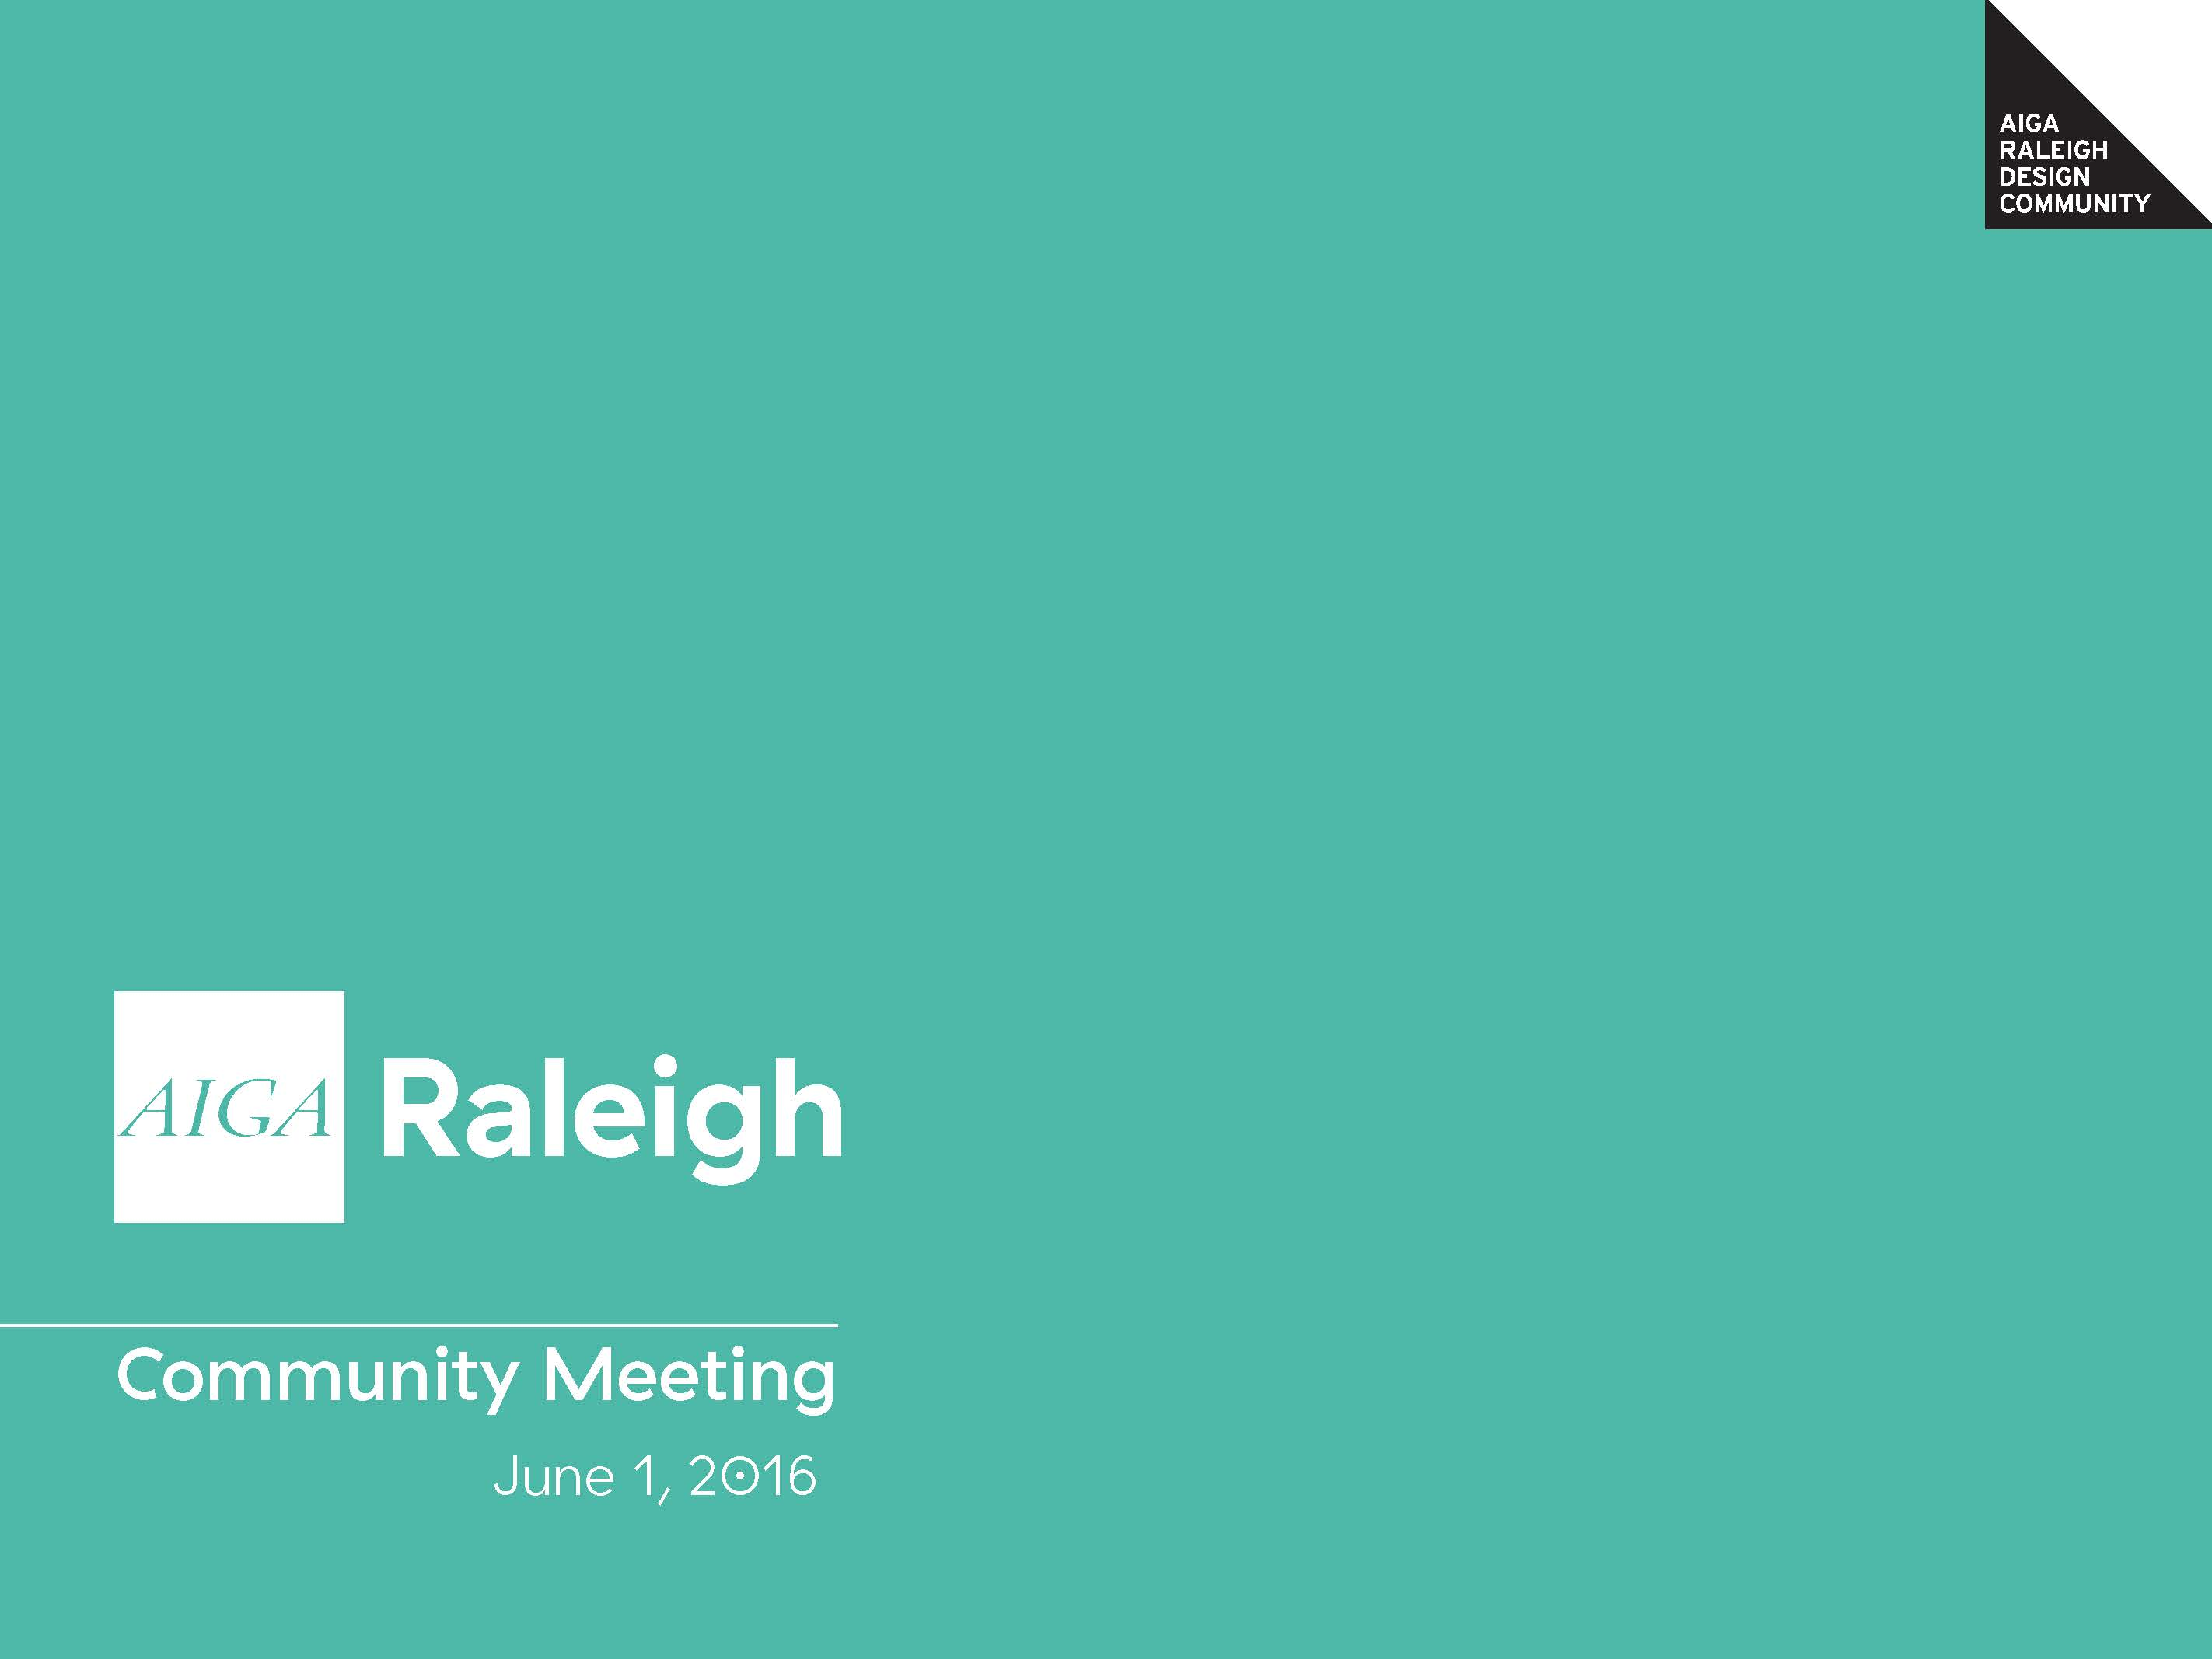 AIGA Raleigh Community Meeting June 2016_Page_01